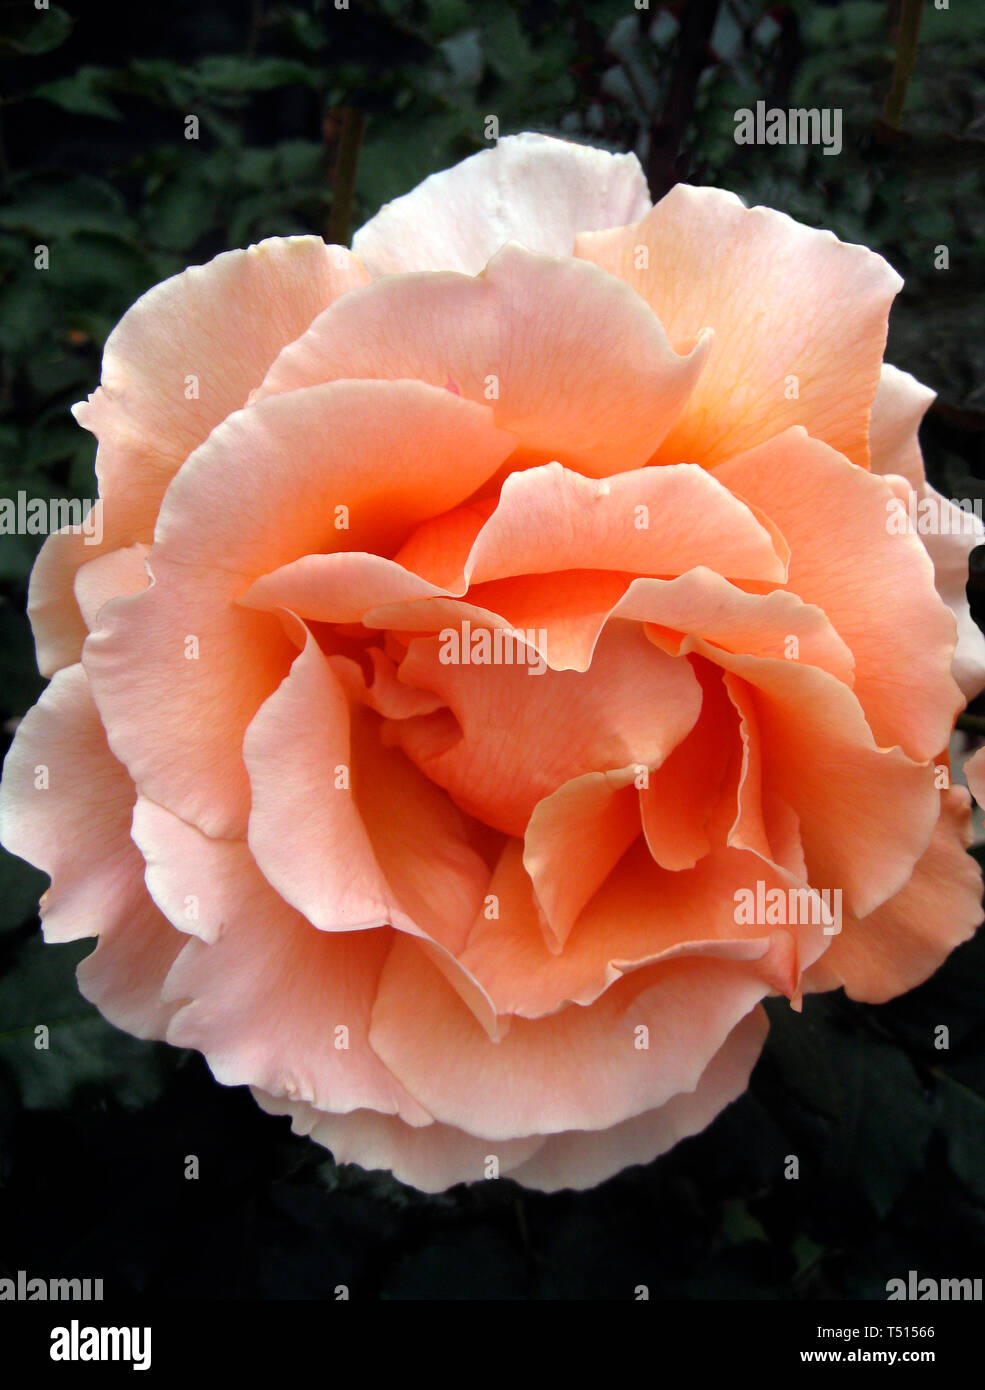 This close-up shows the petals of a beautiful pink rose blossom folding back from the center of this popular ornamental garden flower. The rose is a type of flowering shrub and gets its name from the Latin word Rosa. Roses belong to the family of plants called Rosaceae and are considered the most popular flowers in the world. With more than 150 species of roses and thousands of hybrids, roses can be found in nearly every color and dozens of different shapes. - Stock Image